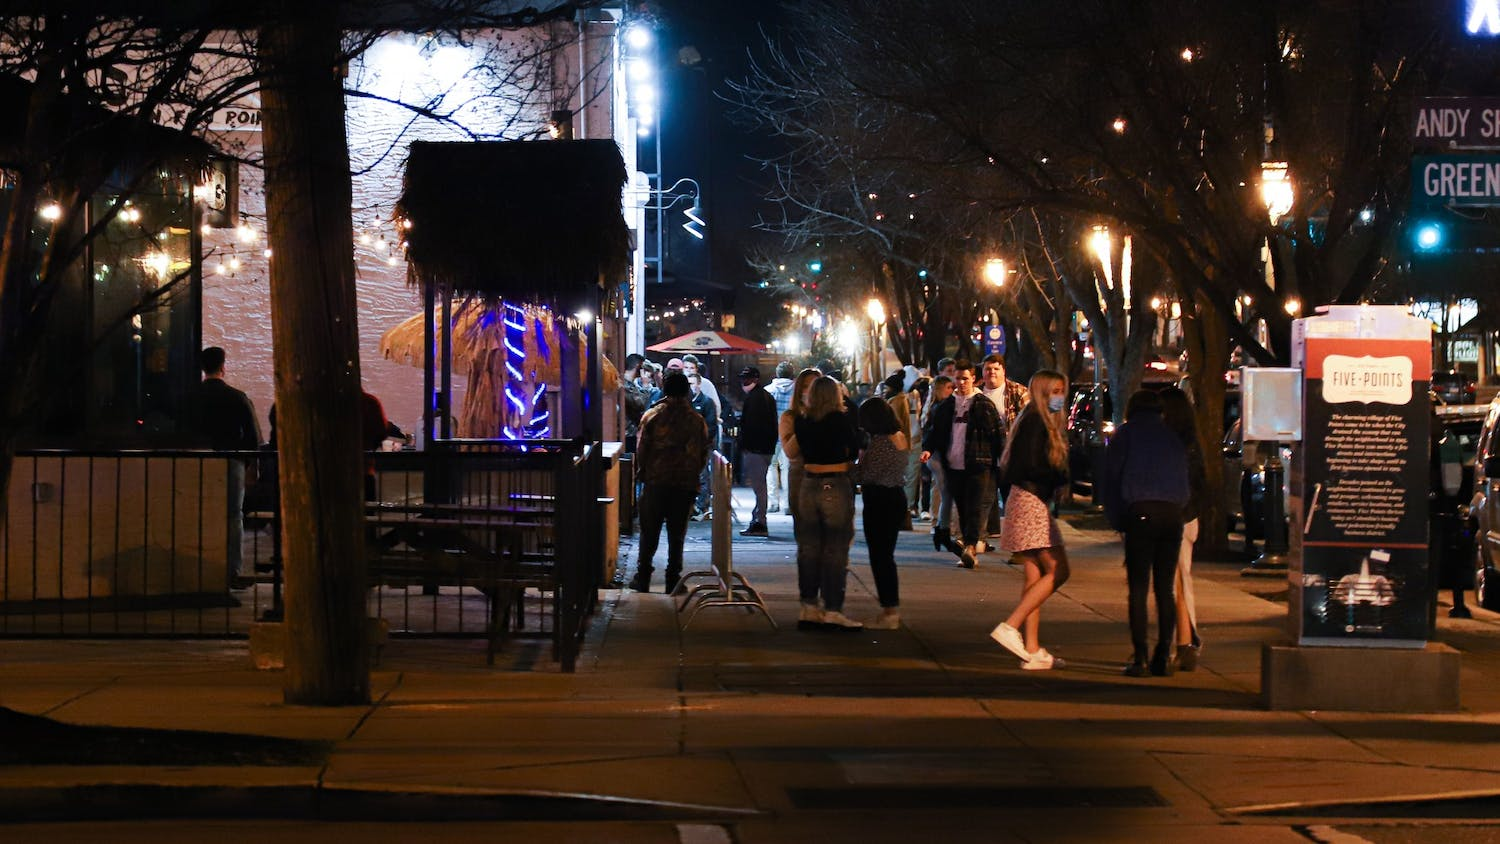 The walkway facing the bar Breakers from the corner of Harden and Greene Street at 9:52 p.m. on Jan. 29, 2021.